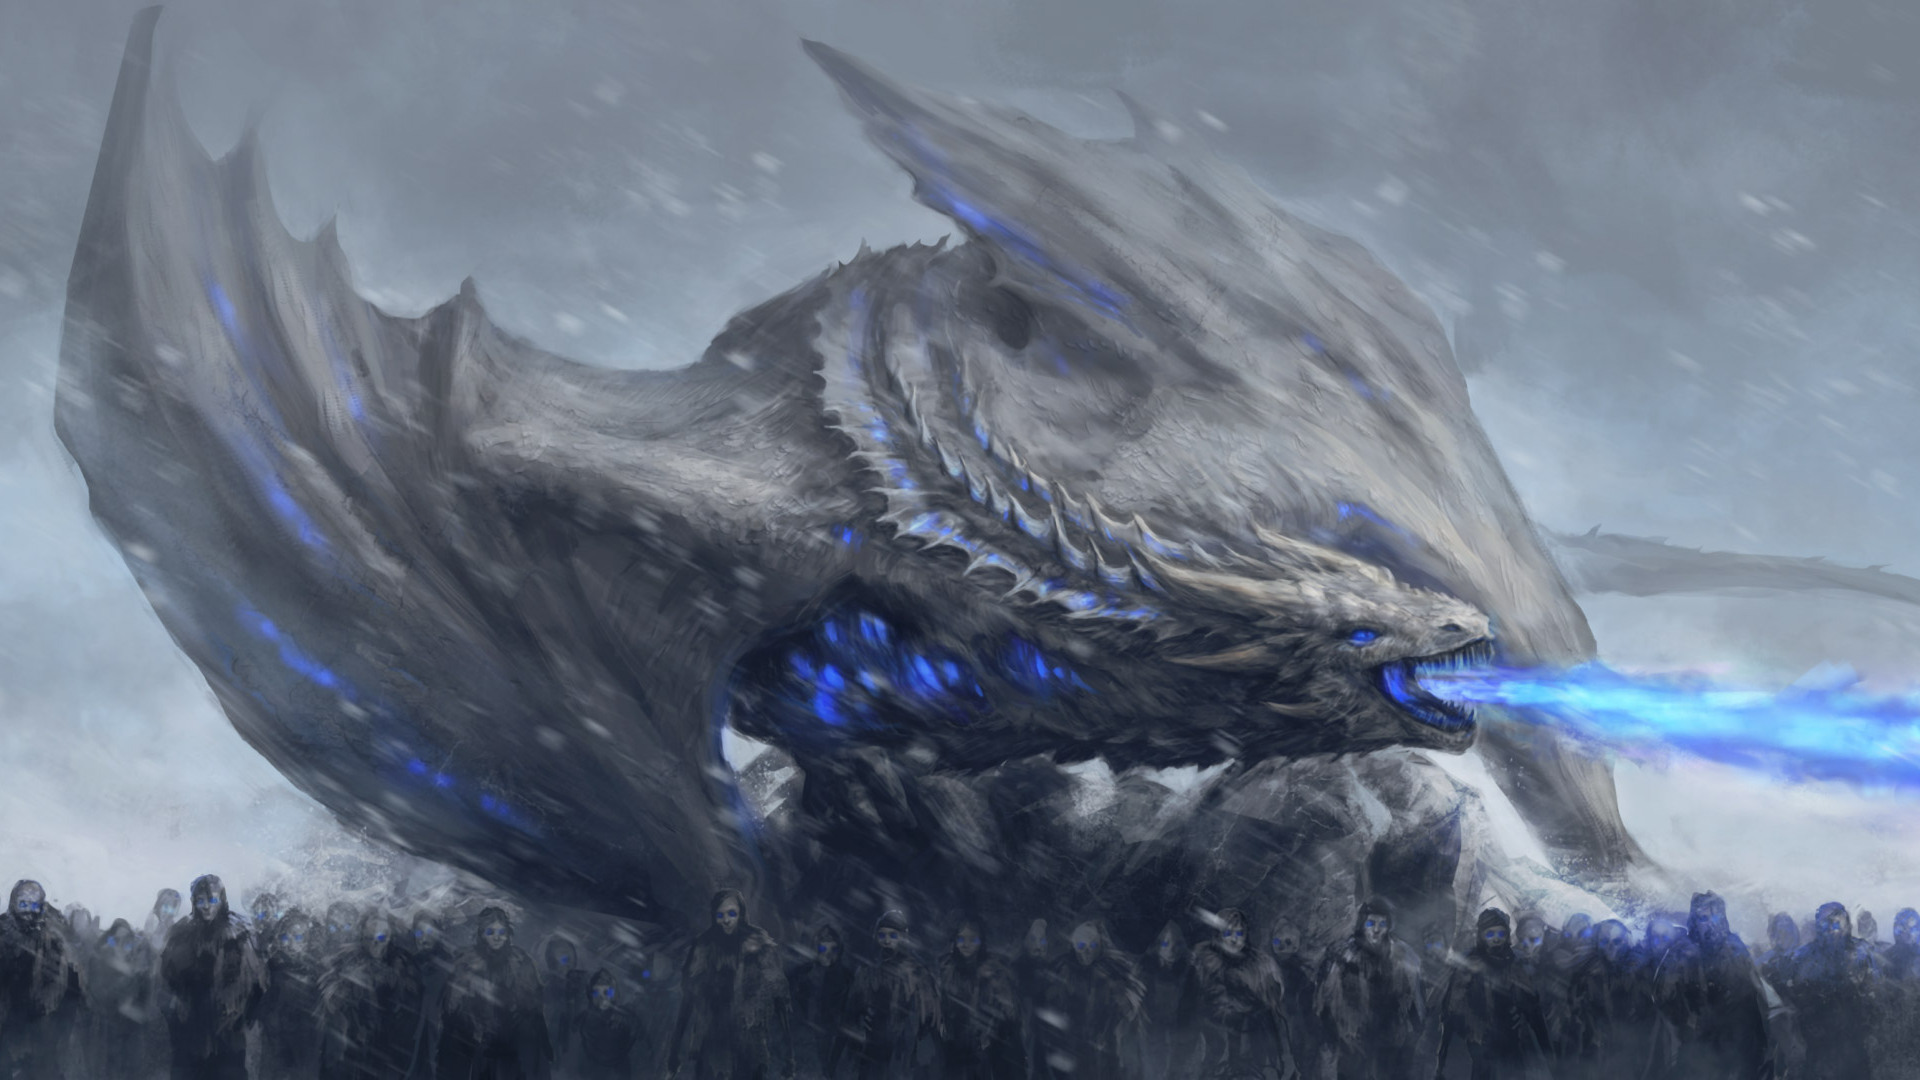 1920x1080 White Walkers Dragon Game Of Thrones Laptop Full Hd 1080p